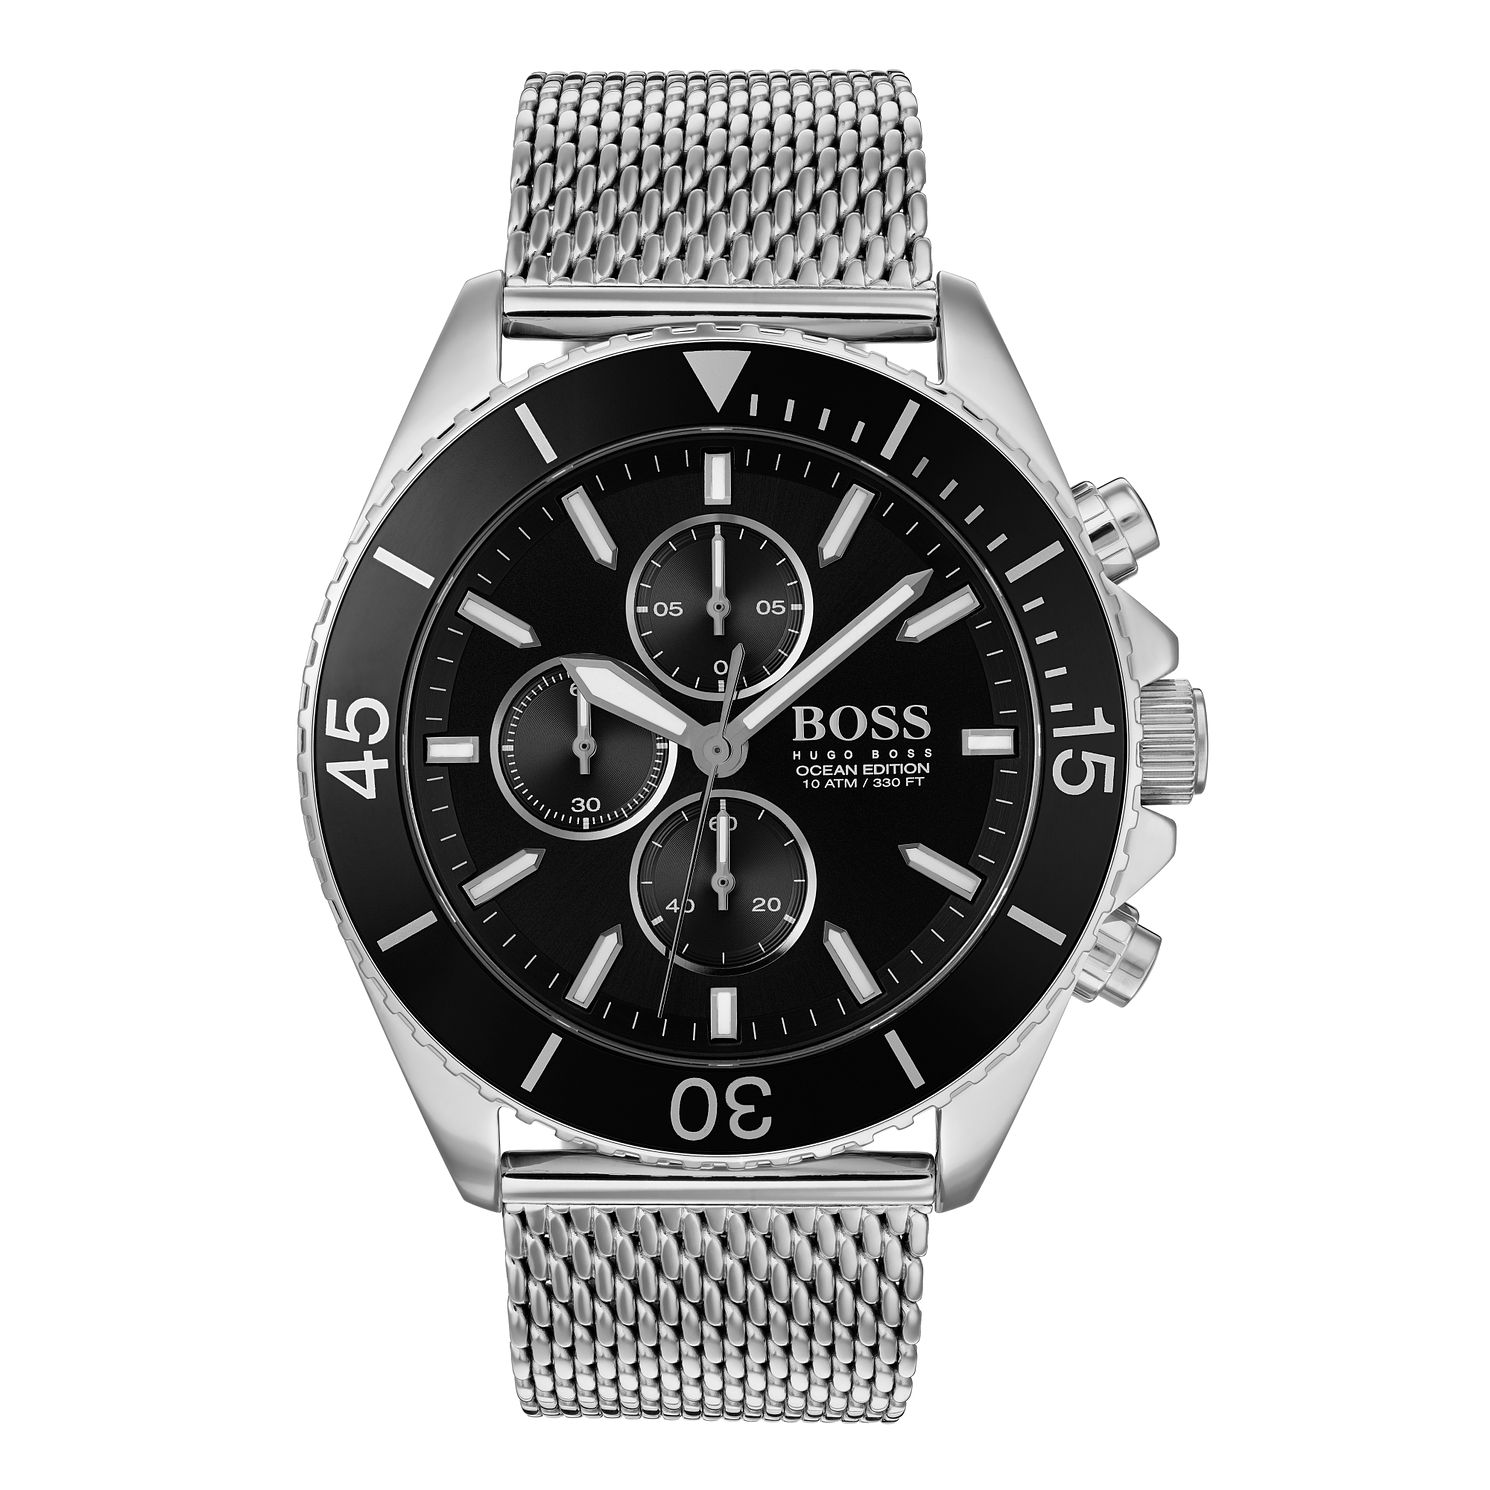 BOSS Ocean Edition Men's Stainless Steel Bracelet Watch - Product number 3341976